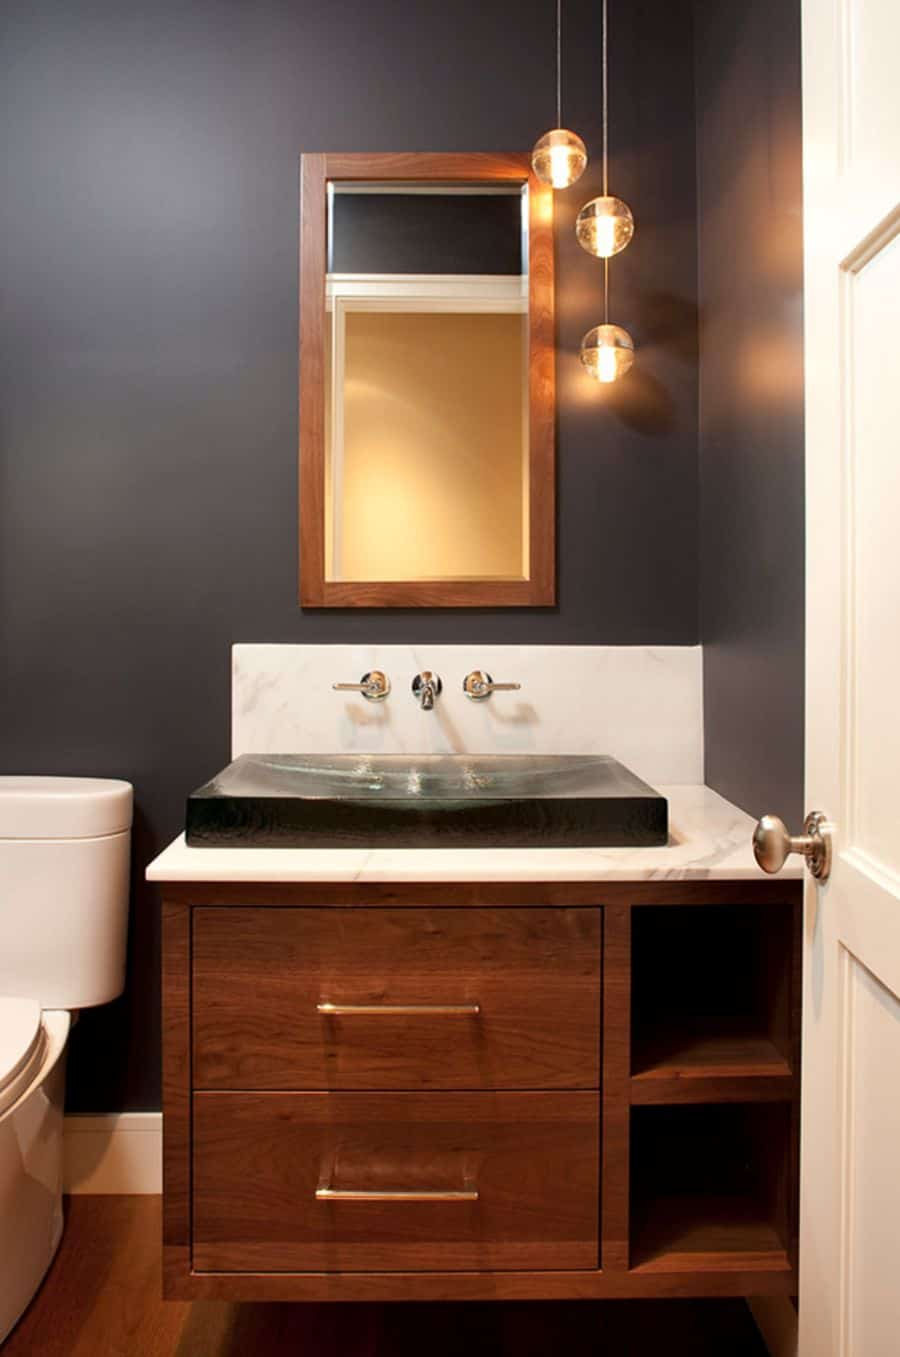 Add contrast with a black modern sink